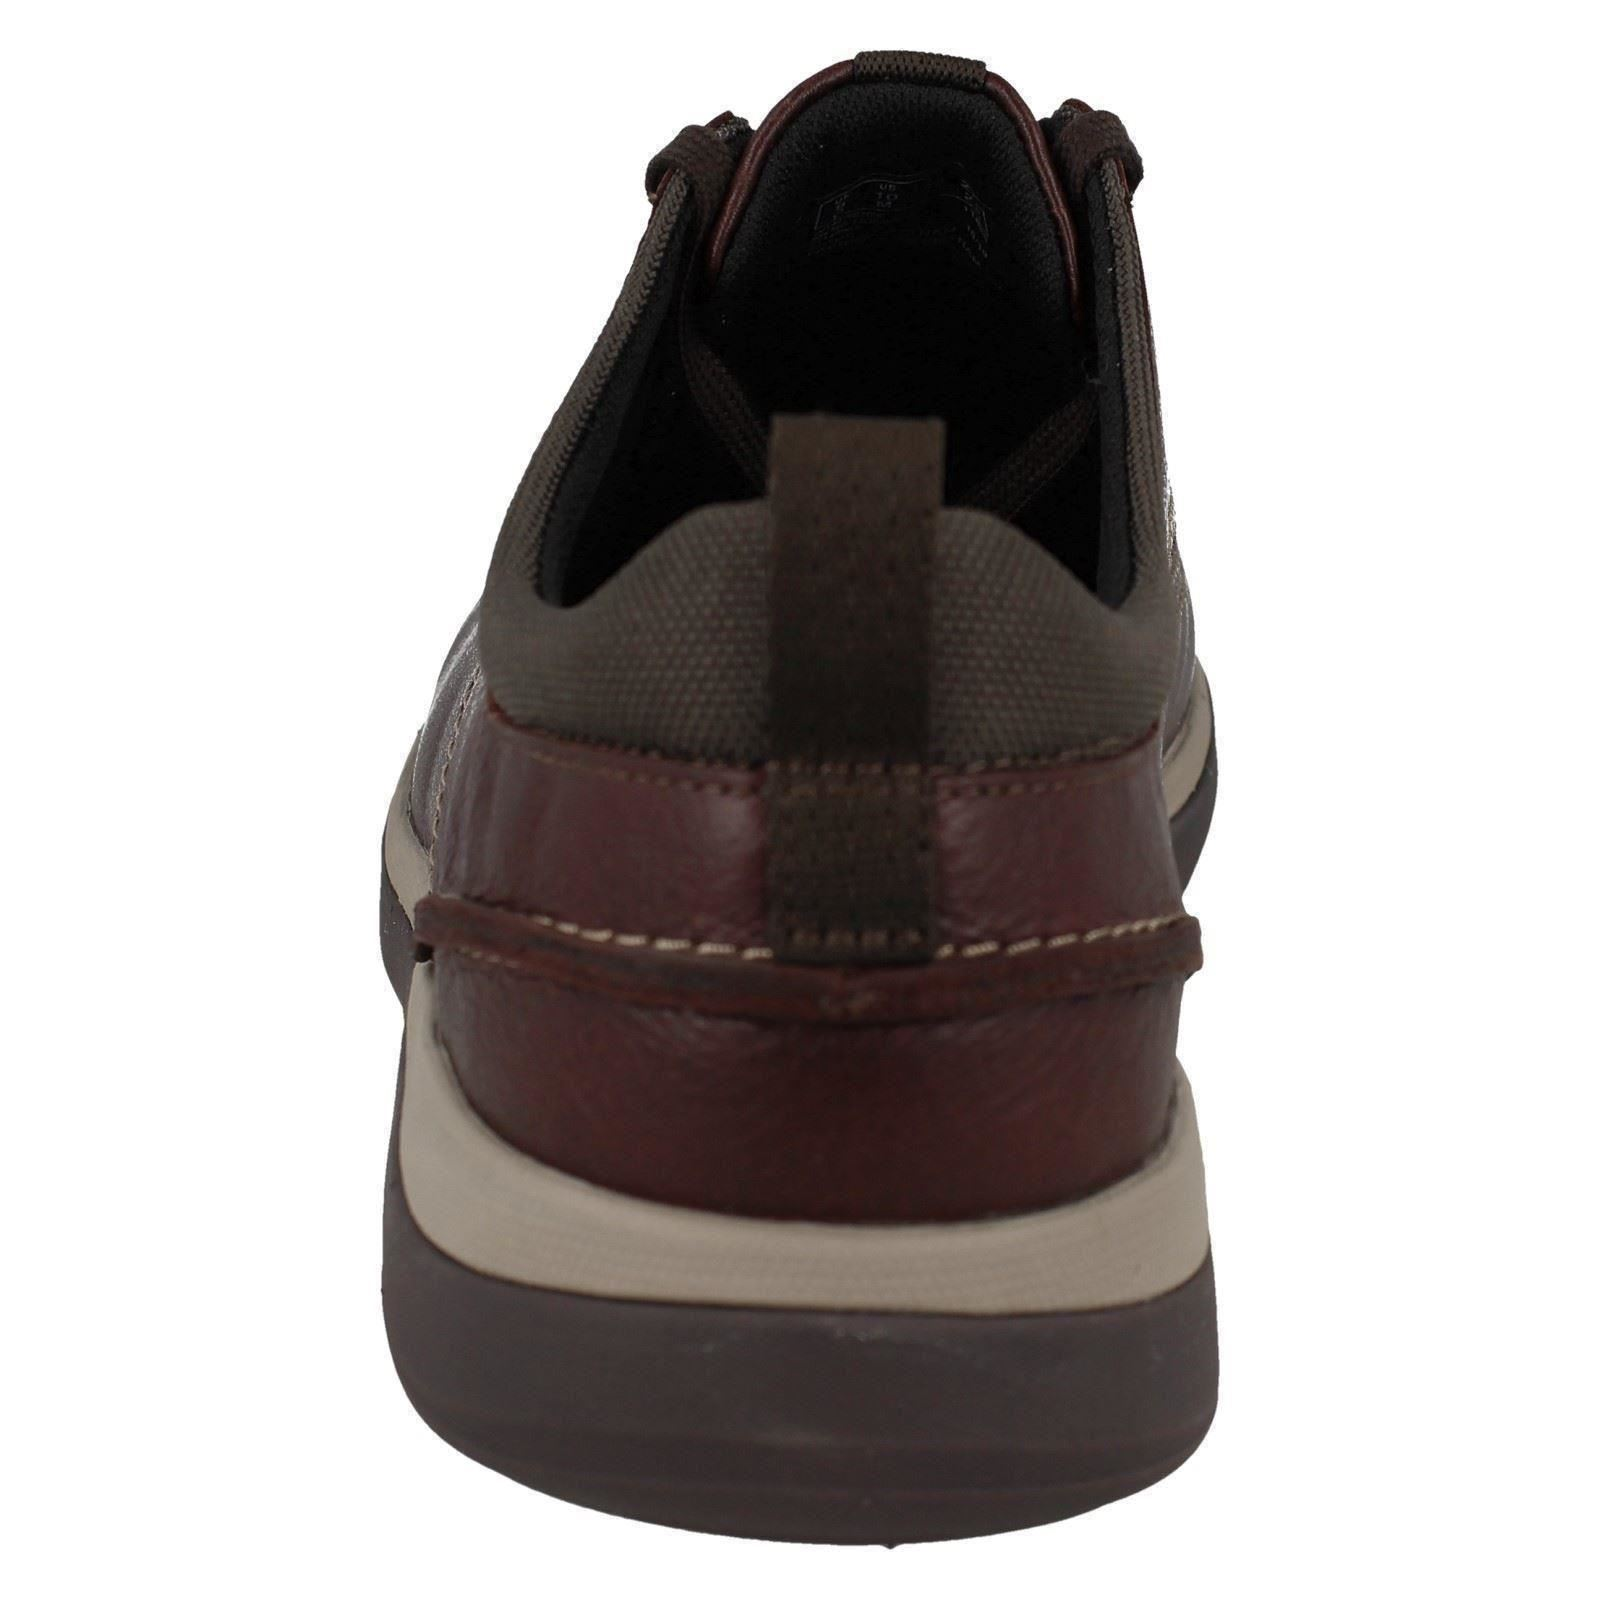 Mens-Unstructured-by-Clarks-Lace-Up-Shoes-039-Garratt-Street-039 thumbnail 17